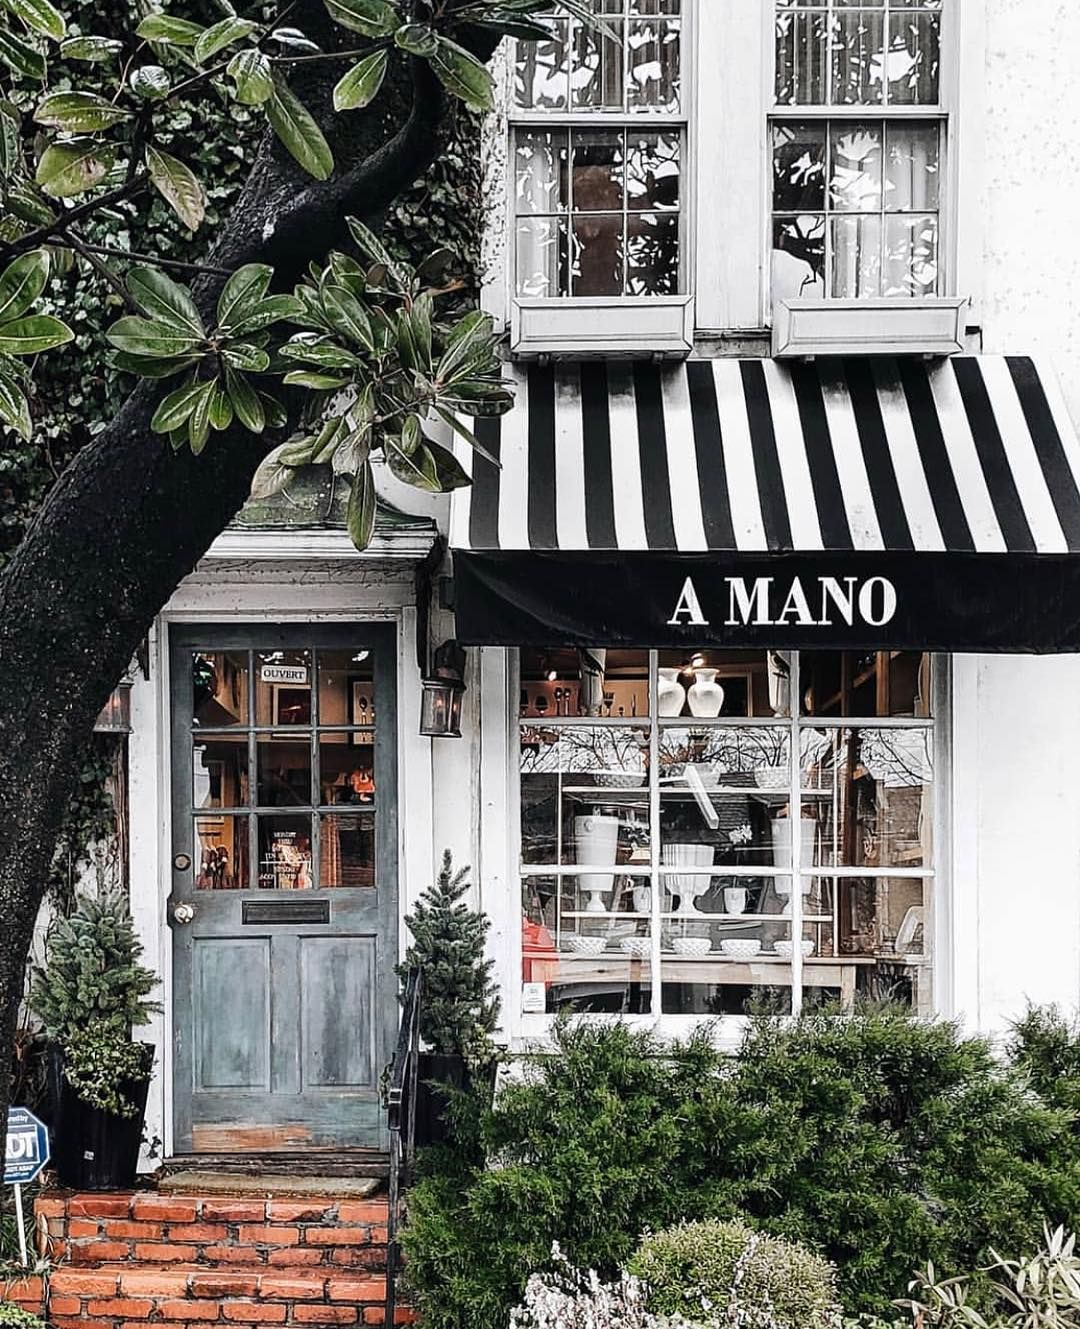 The Shopkeepers On Instagram A Mano Washington D C Iumarkhan Always Love A Black White Awning Excited T Beautiful Night Sky Ivy House Black And White